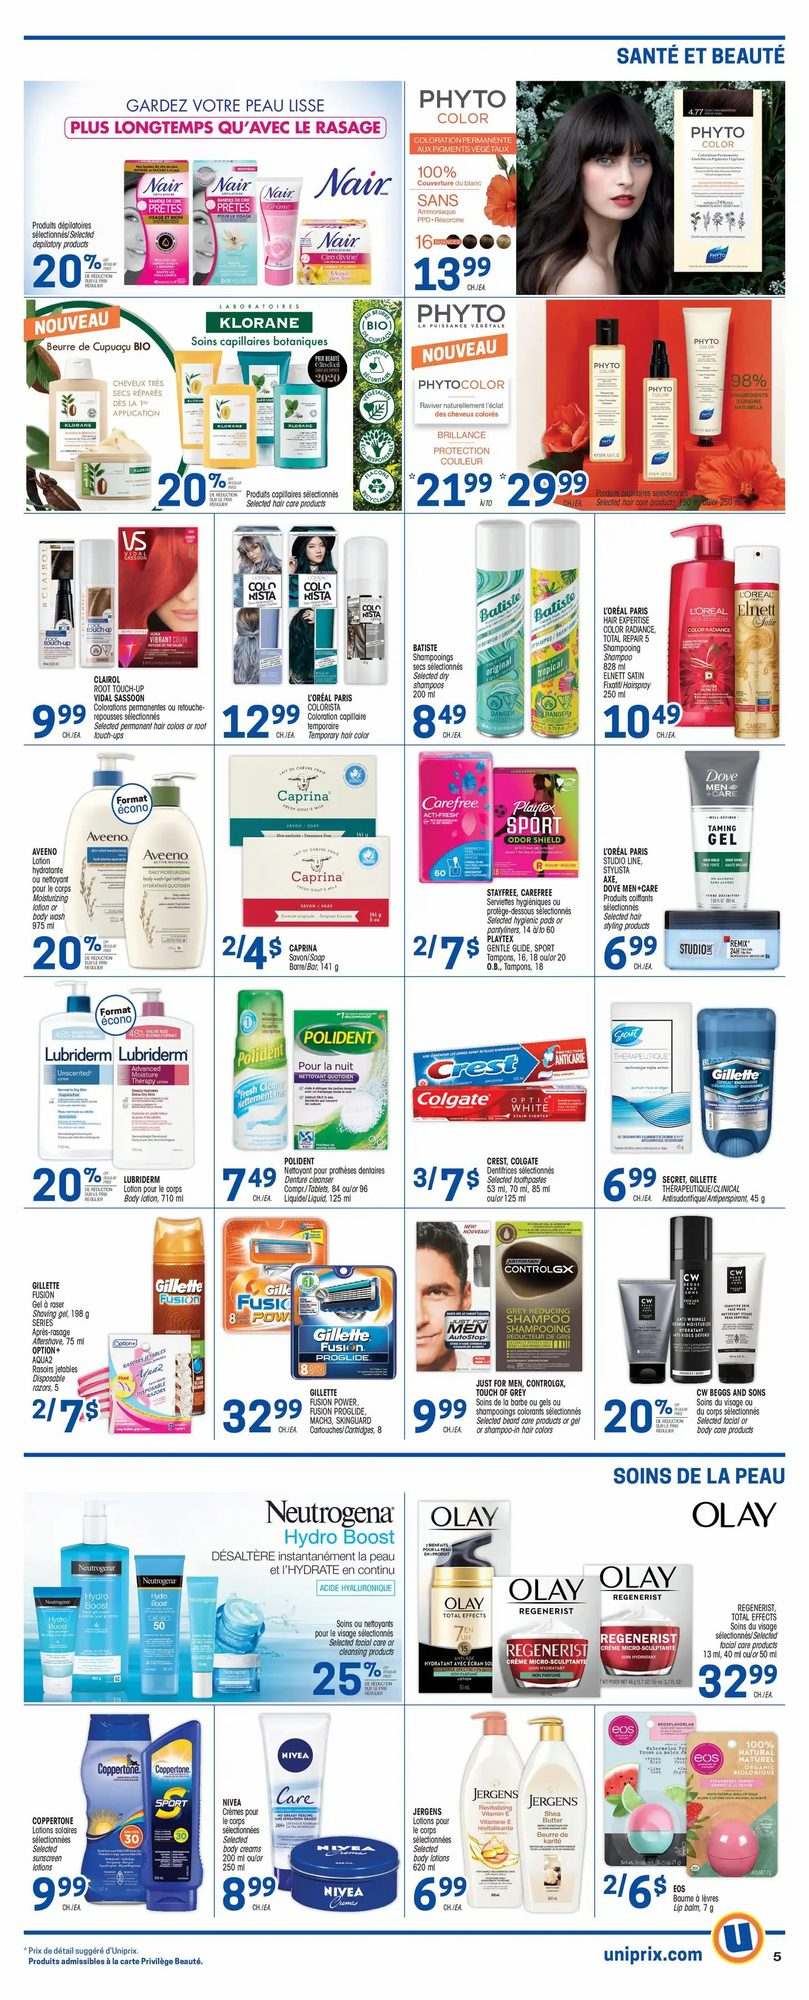 Uniprix - Weekly Flyer Specials - Page 7